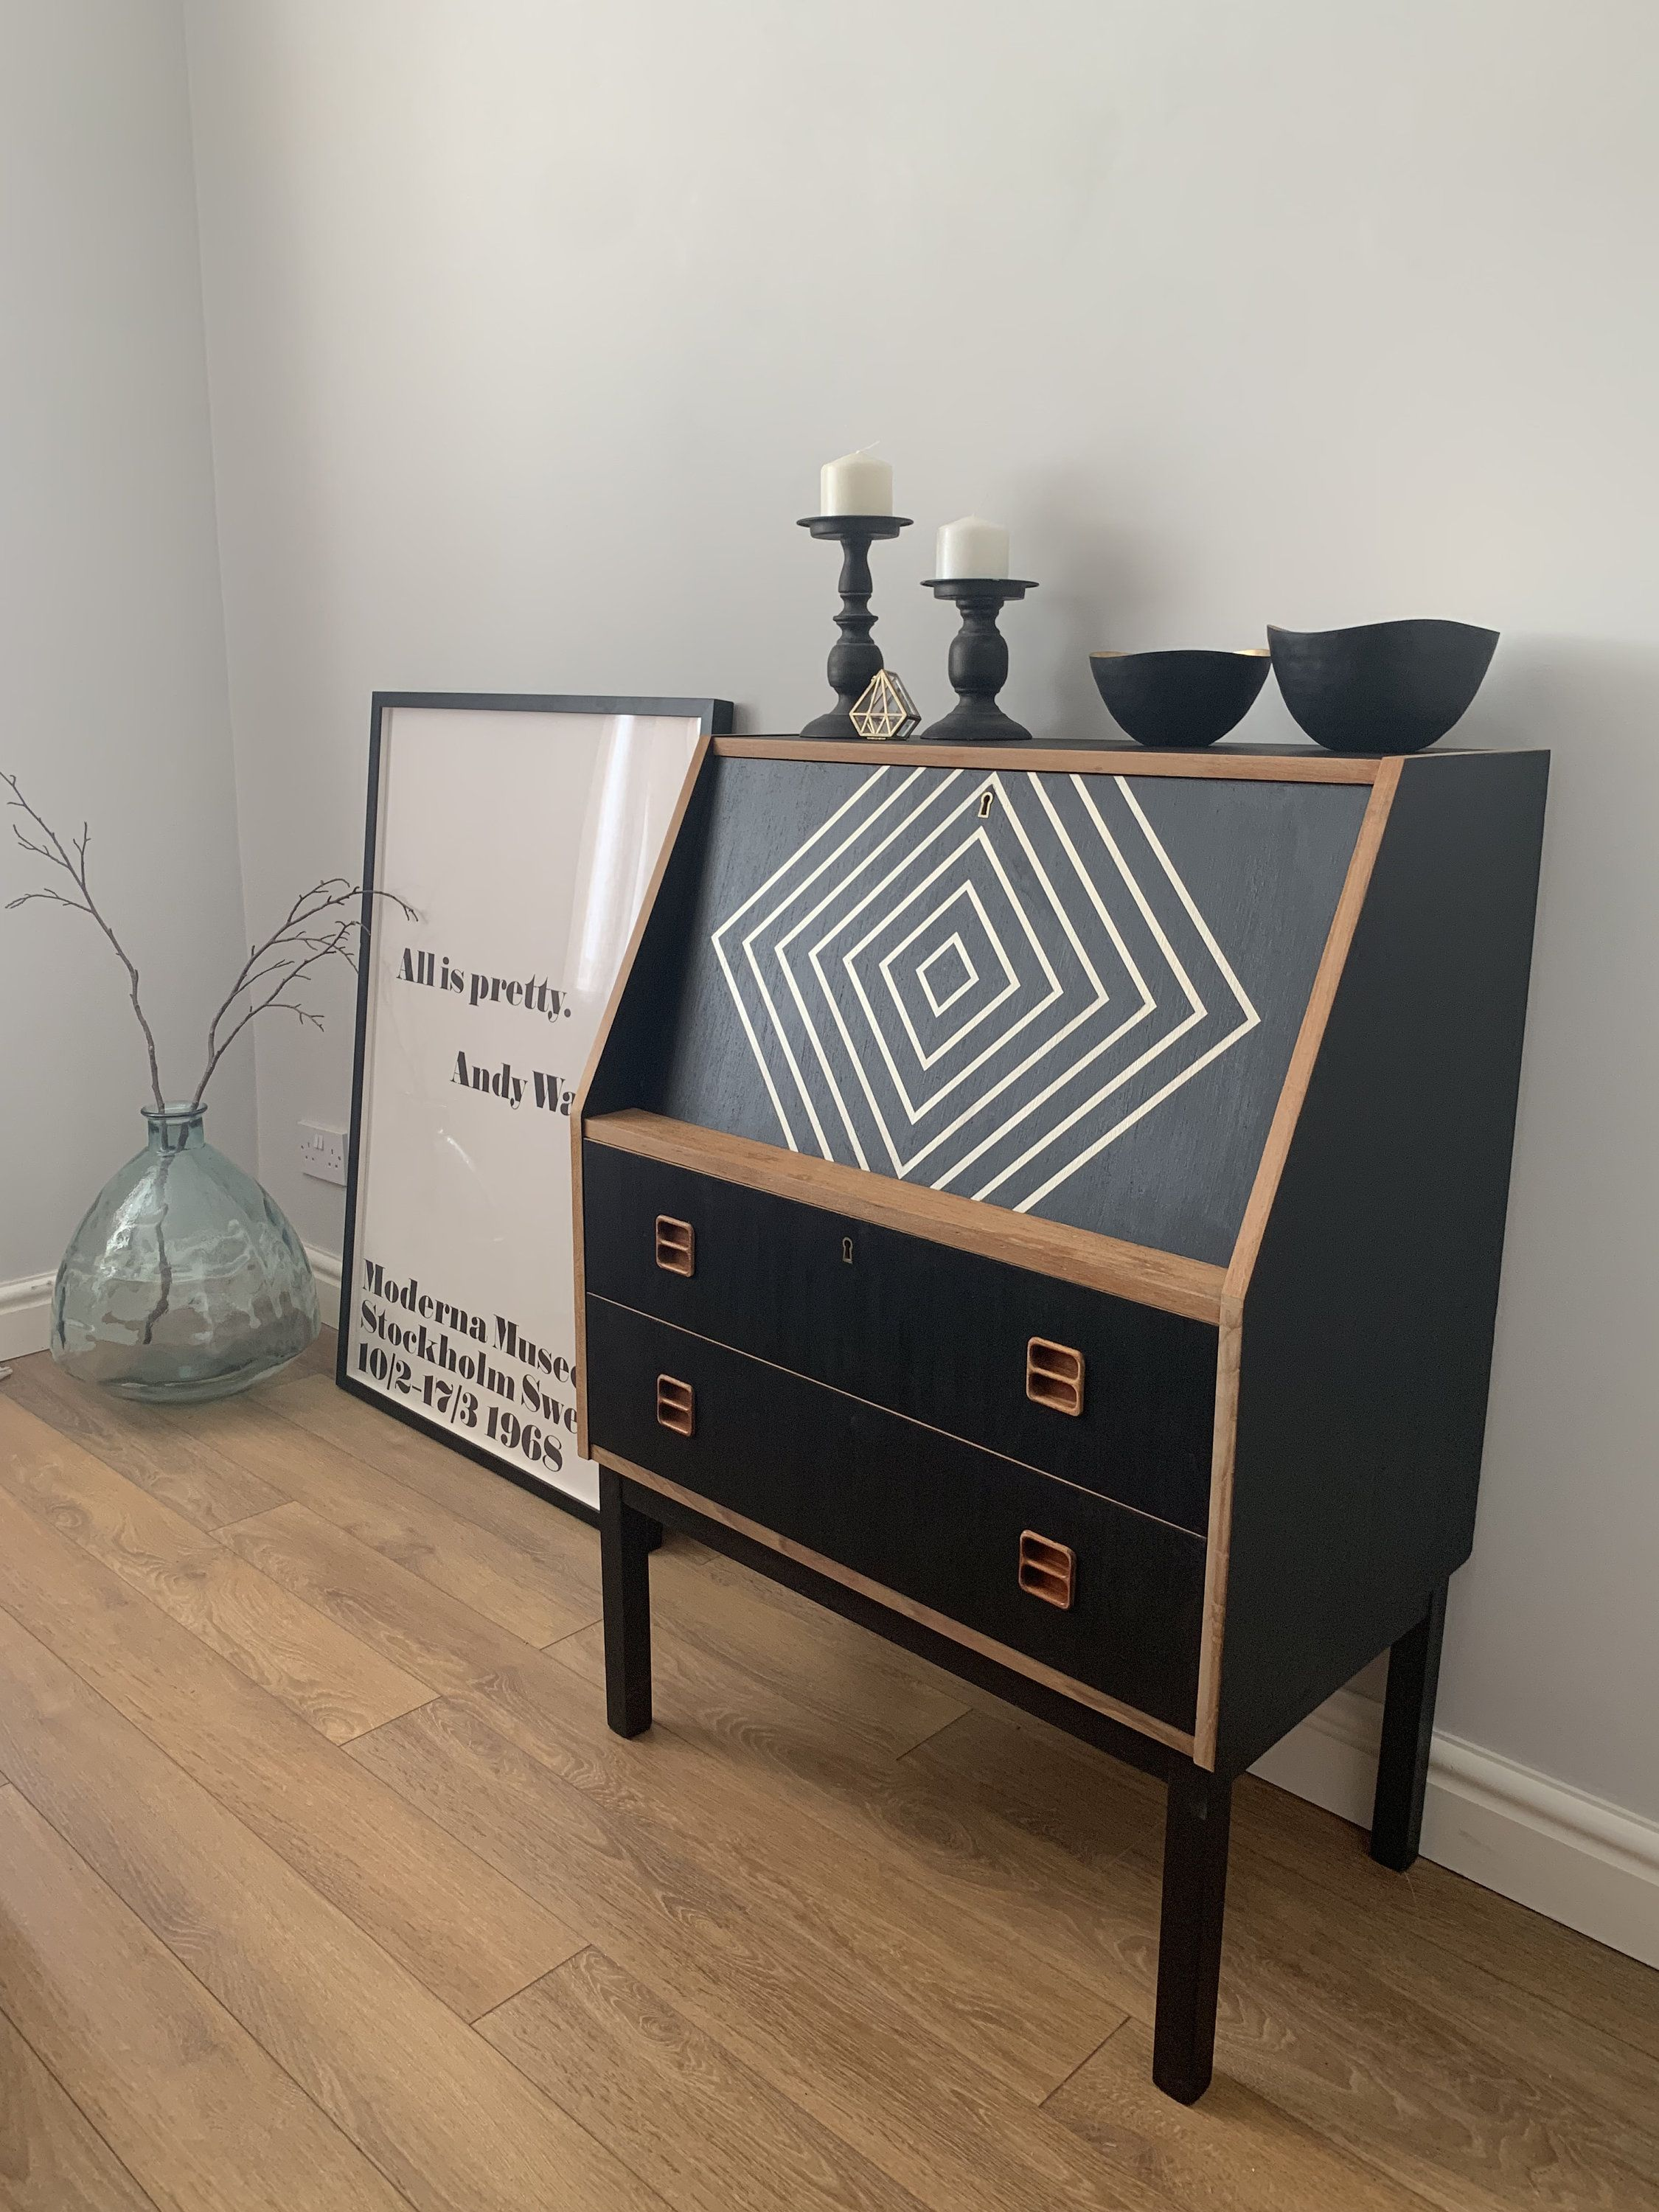 Retro Mid Century Modern Bureau Writing Desk Painted Furniture Retro Bureau With Drawers Vintage Bureau In 2020 Modern Furniture Makeover Furniture Retro Furniture